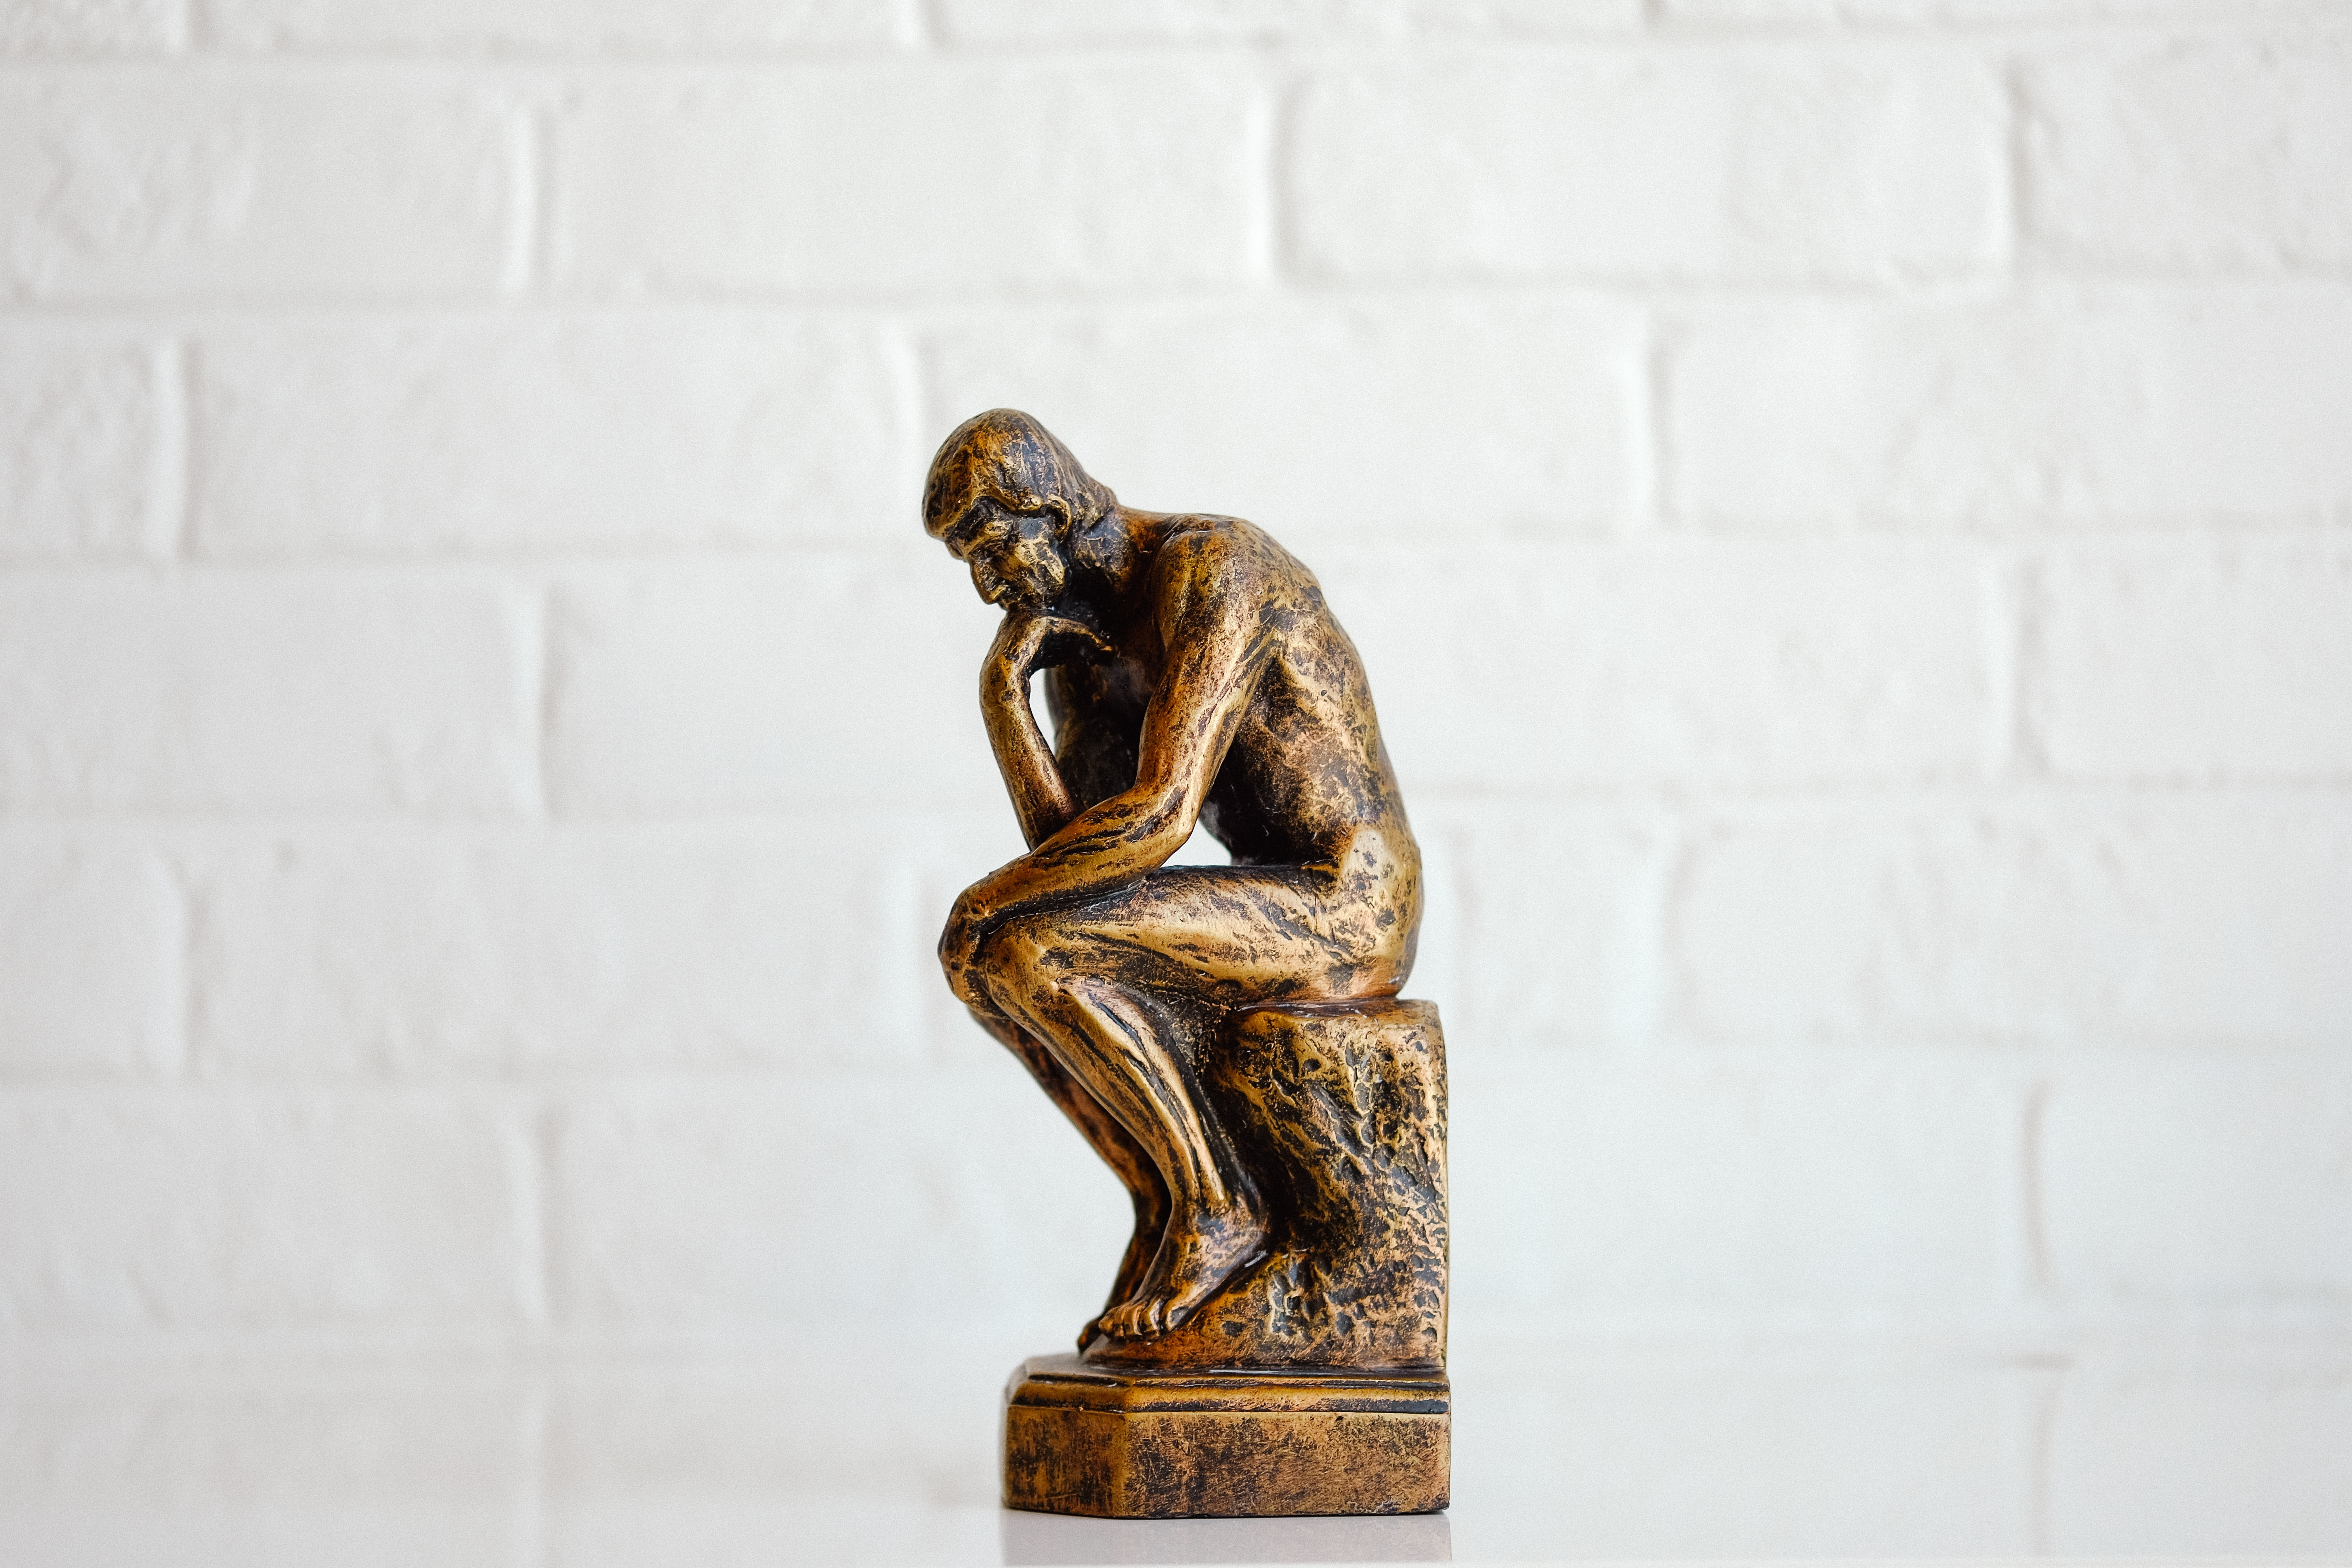 How philosophy can make you happier